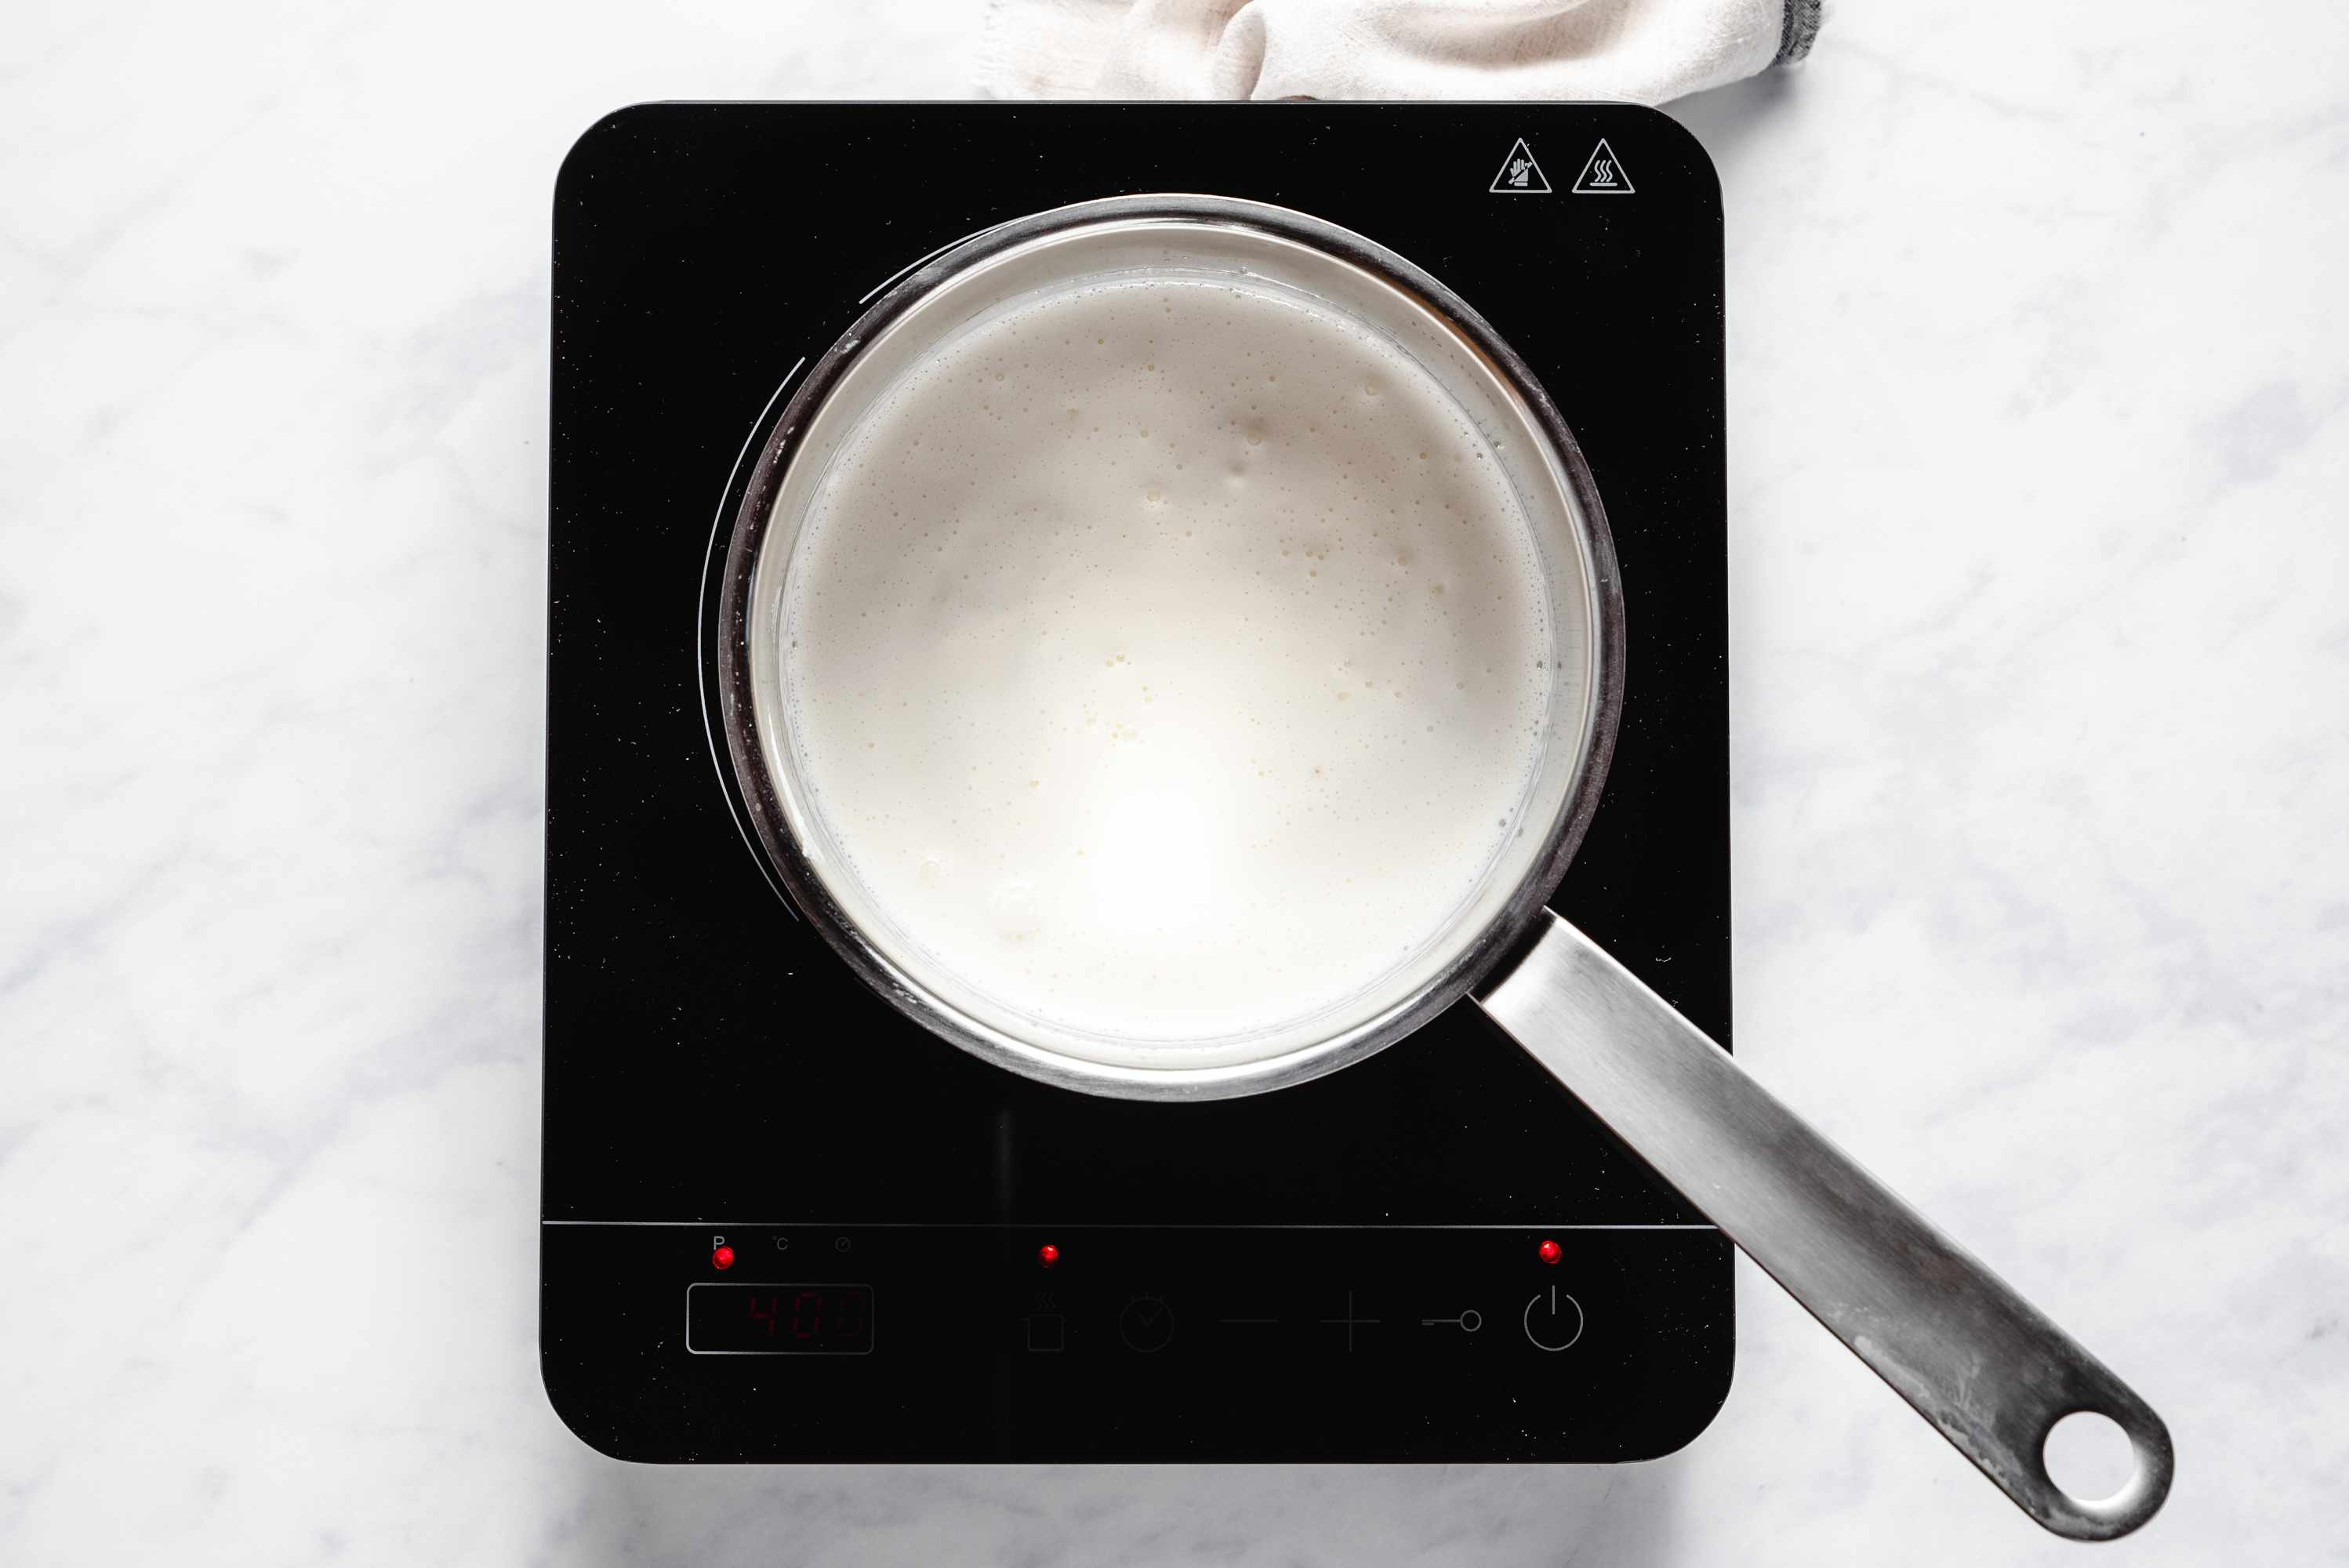 heavy cream and powdered sugar in a pan